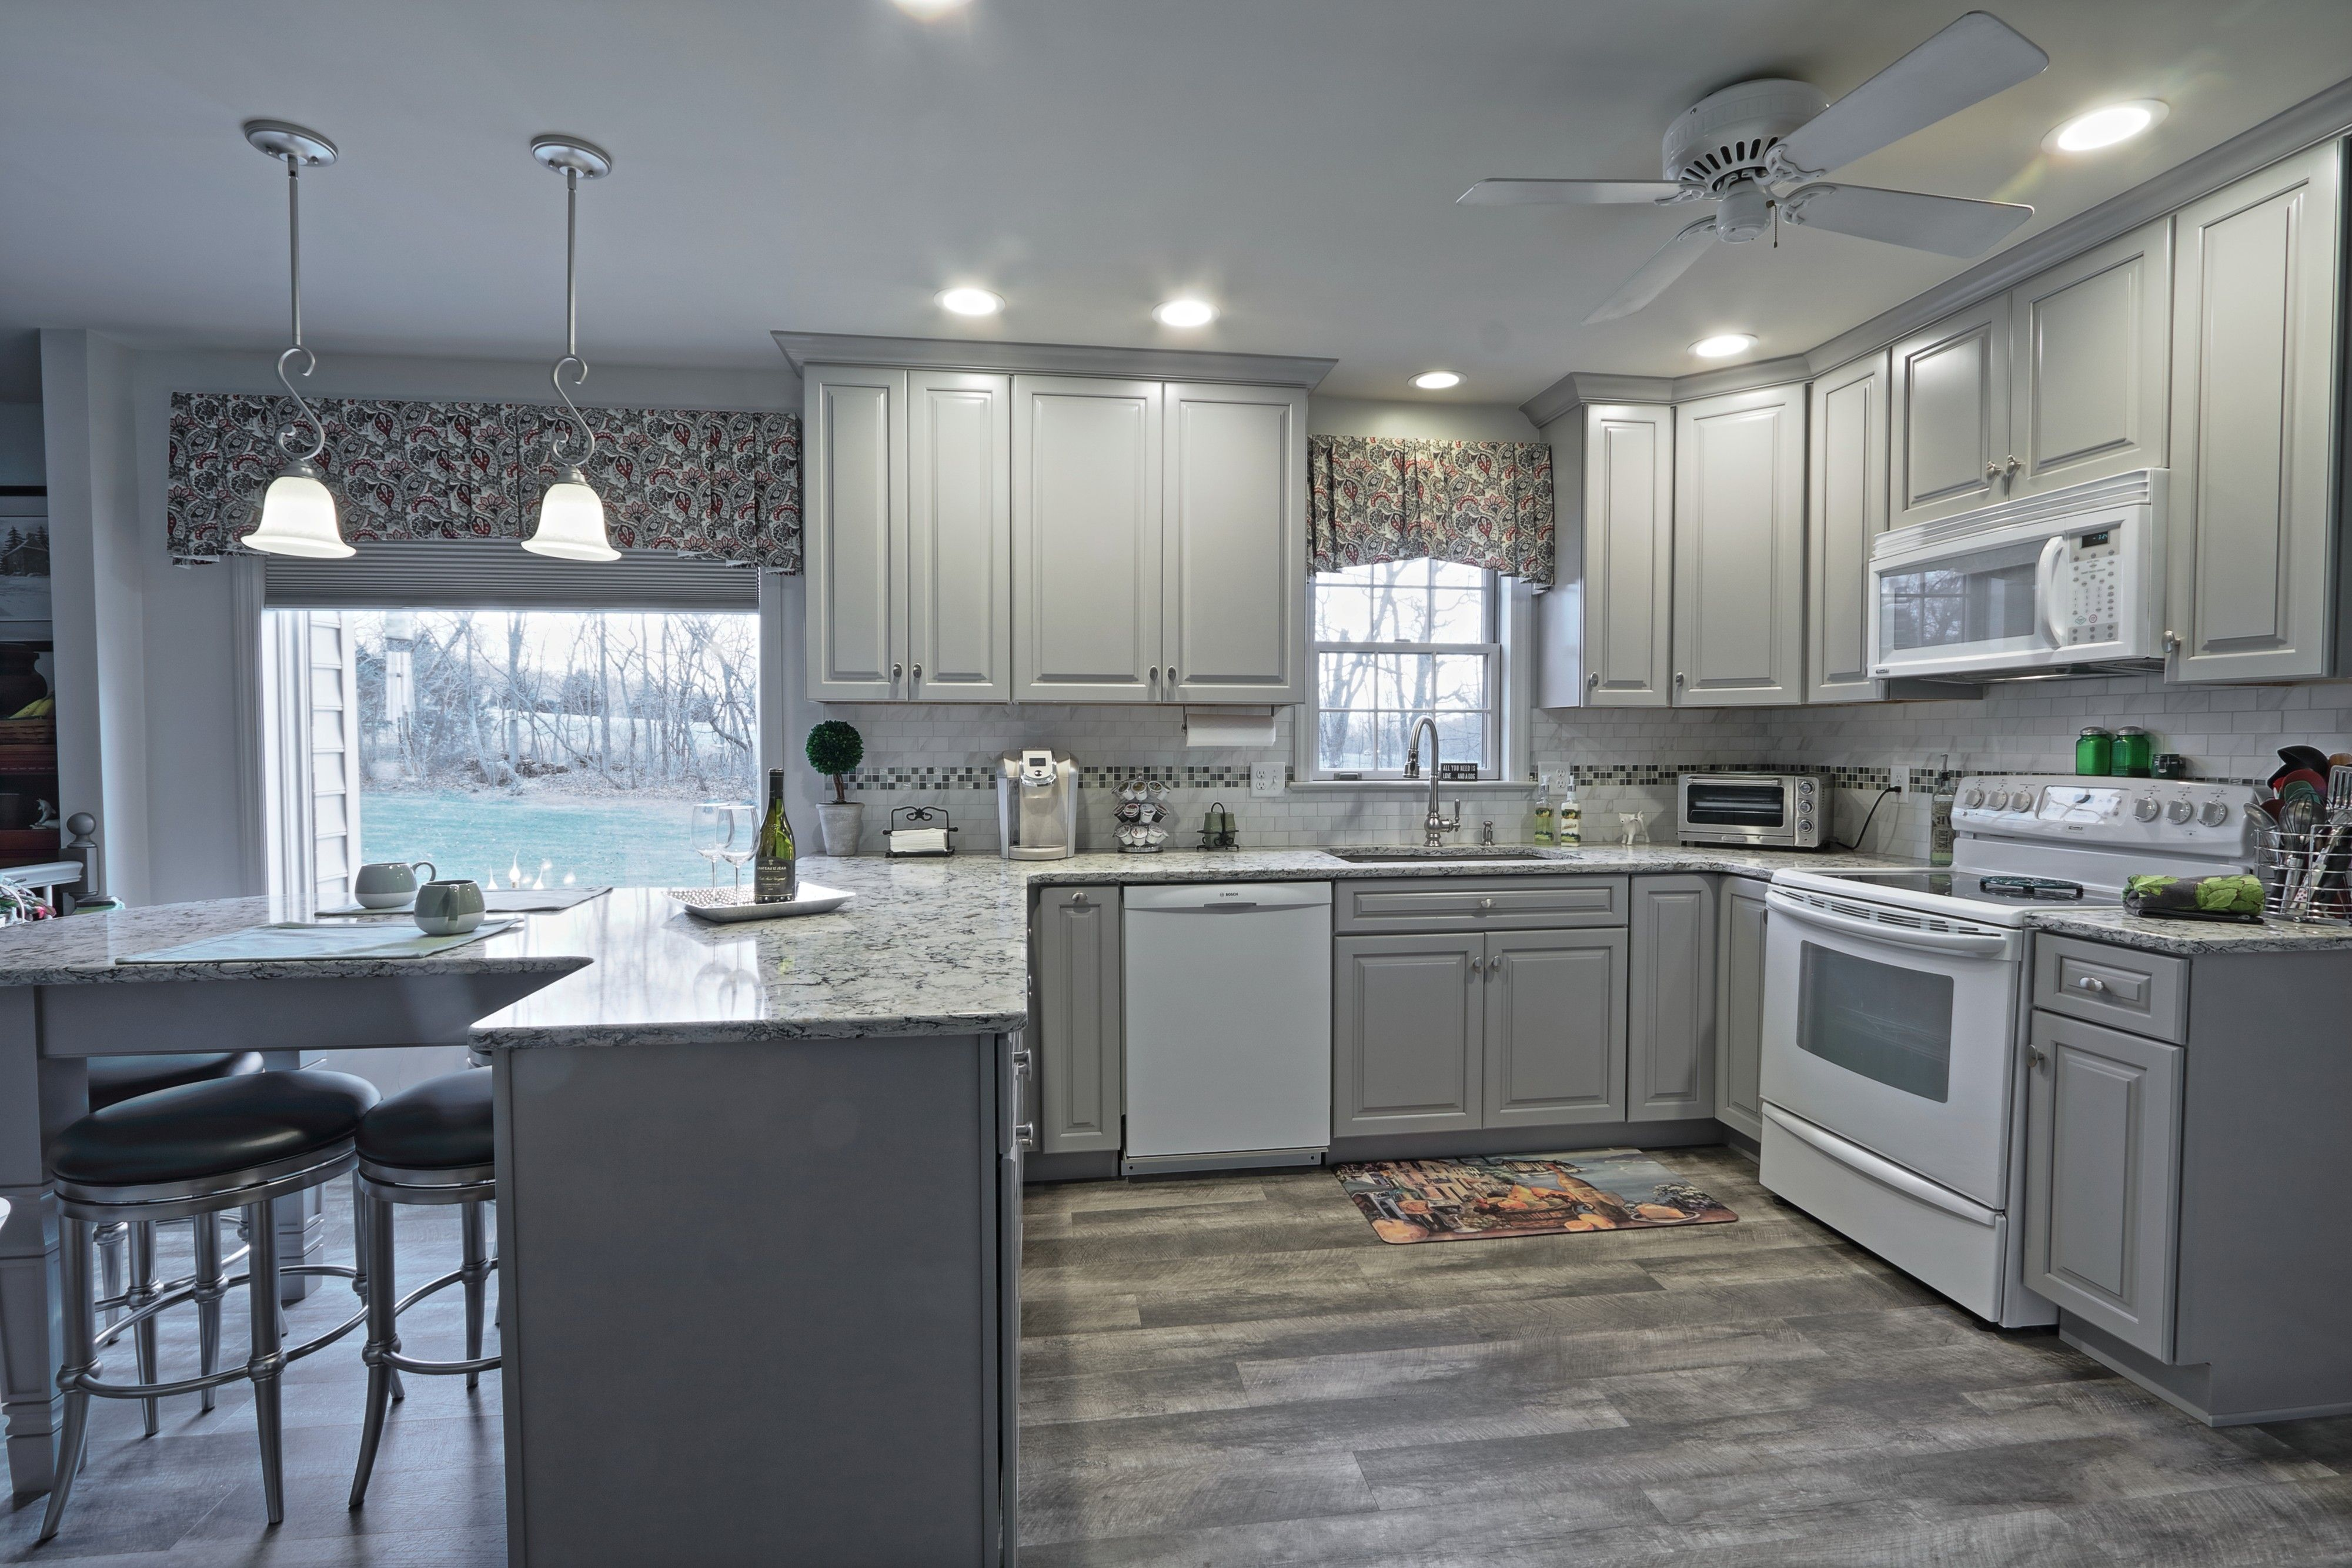 Gray Cabinets With Crown Molding Cambria Praa Sands Quartz Counters With An Attached Eating Area Mannington Adura Vinyl Plank Flooring Flooring Kitchen Redo